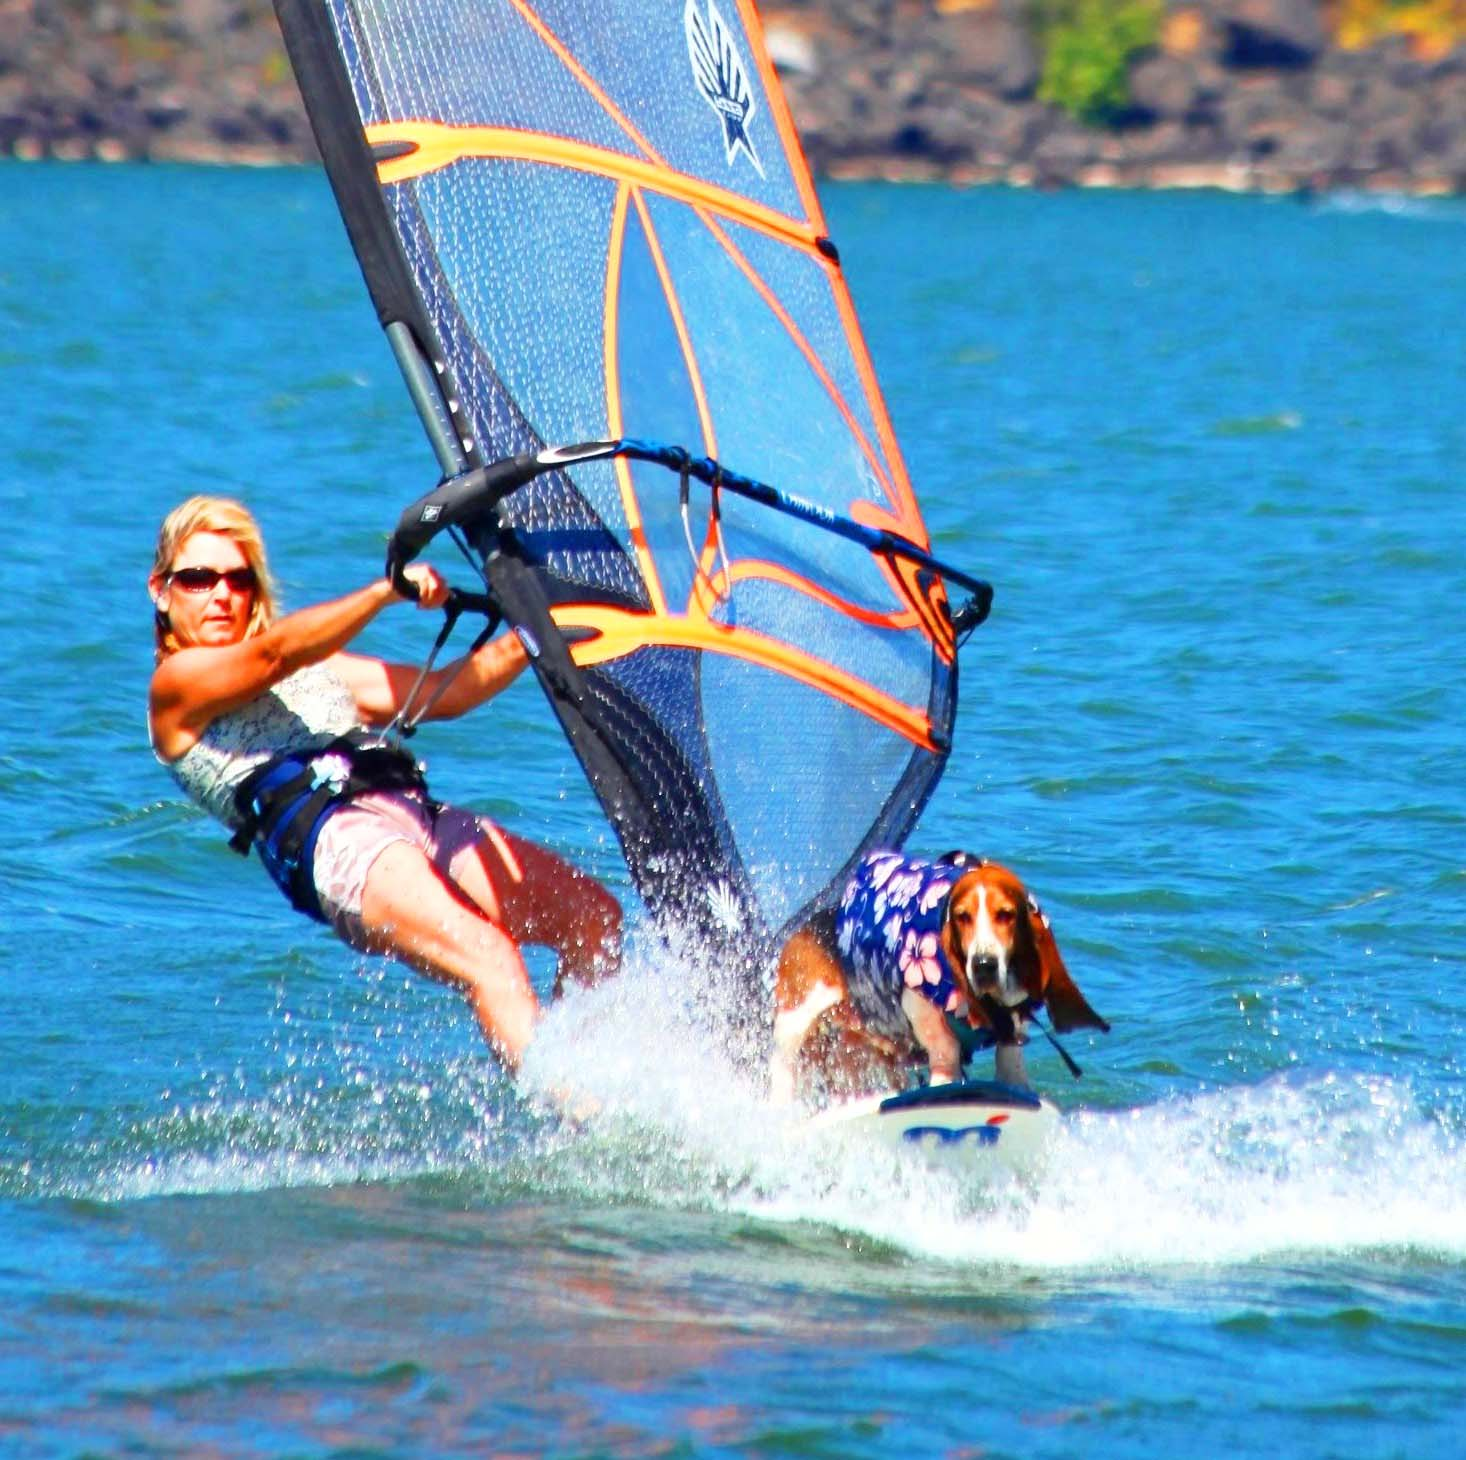 Elvis and I windsurfing the Columbia River Gorge - windsurfing capital of the world.   Photo: (c) Barb Ayers,  Surf Dog Diaries , www.DogDiary.org